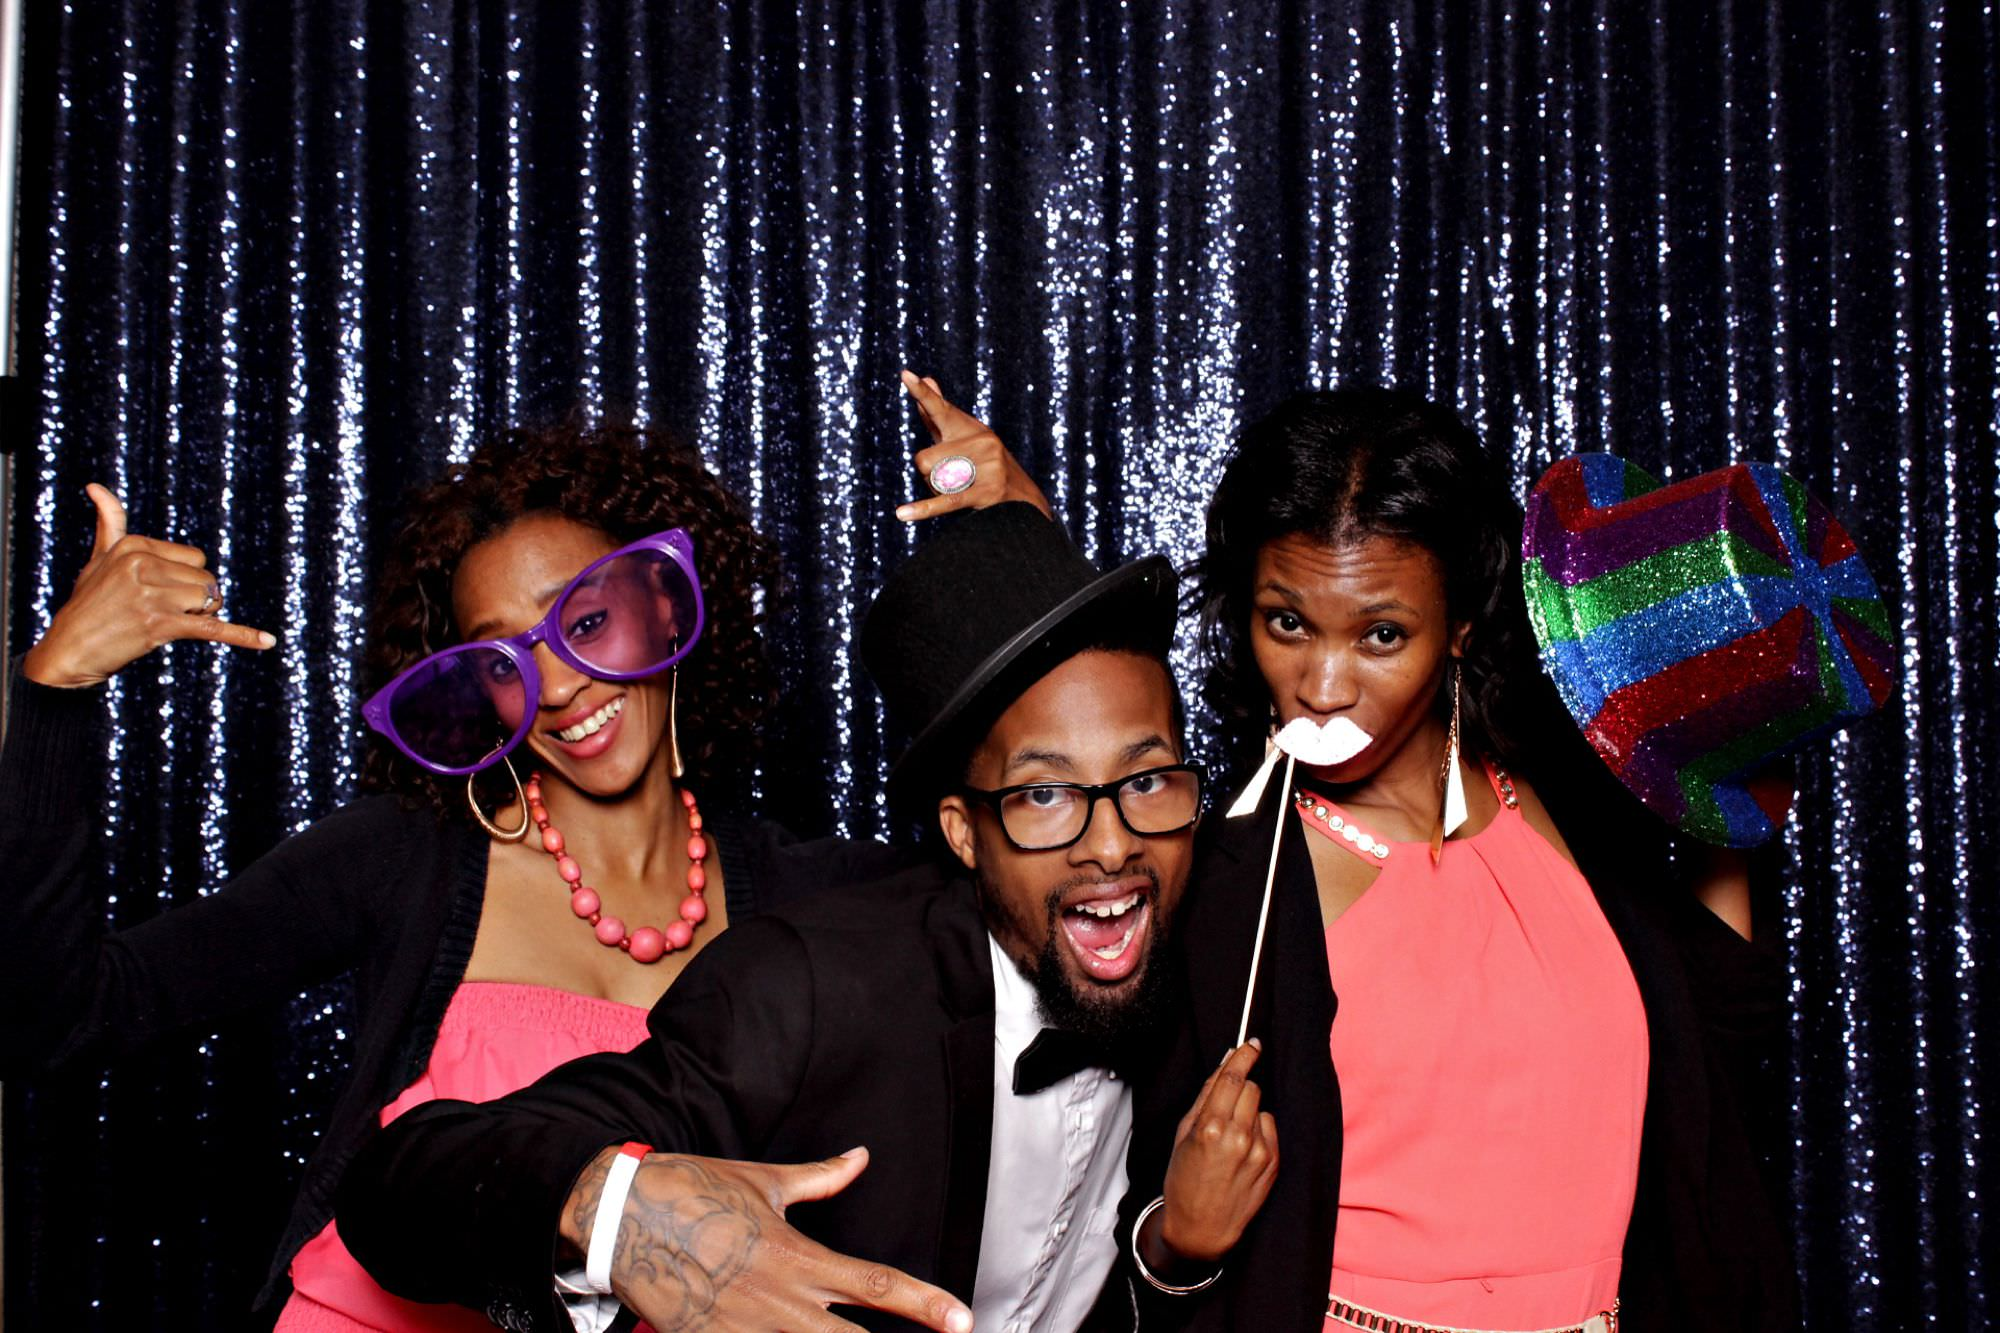 Photobooth company NJ